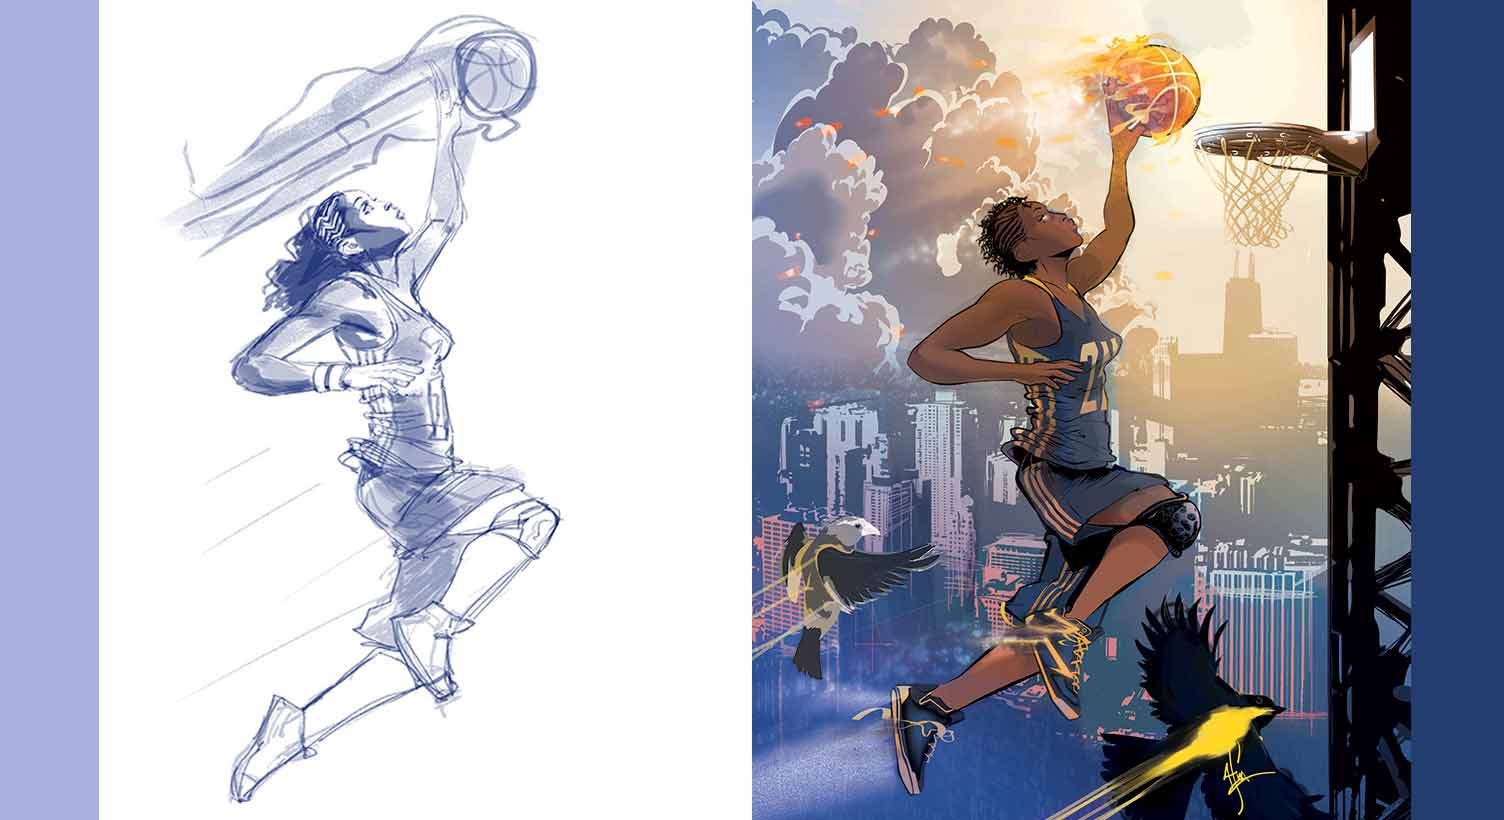 Tamika Catchings Marvel graphic